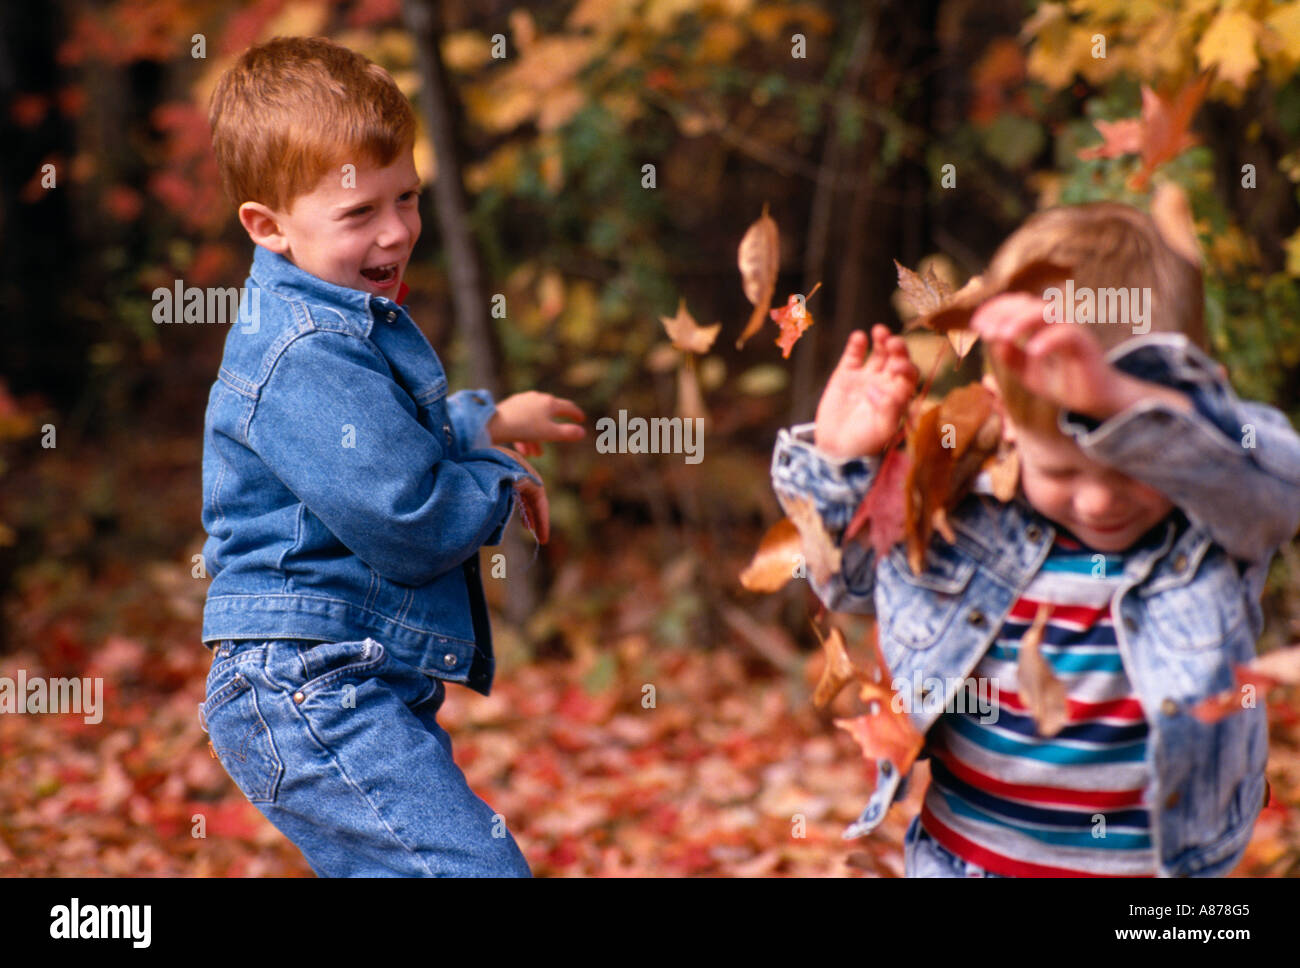 Young brothers exchange a playful toss of autumn leaves October in Blendon Woods Metro Park Columbus Ohio model released - Stock Image